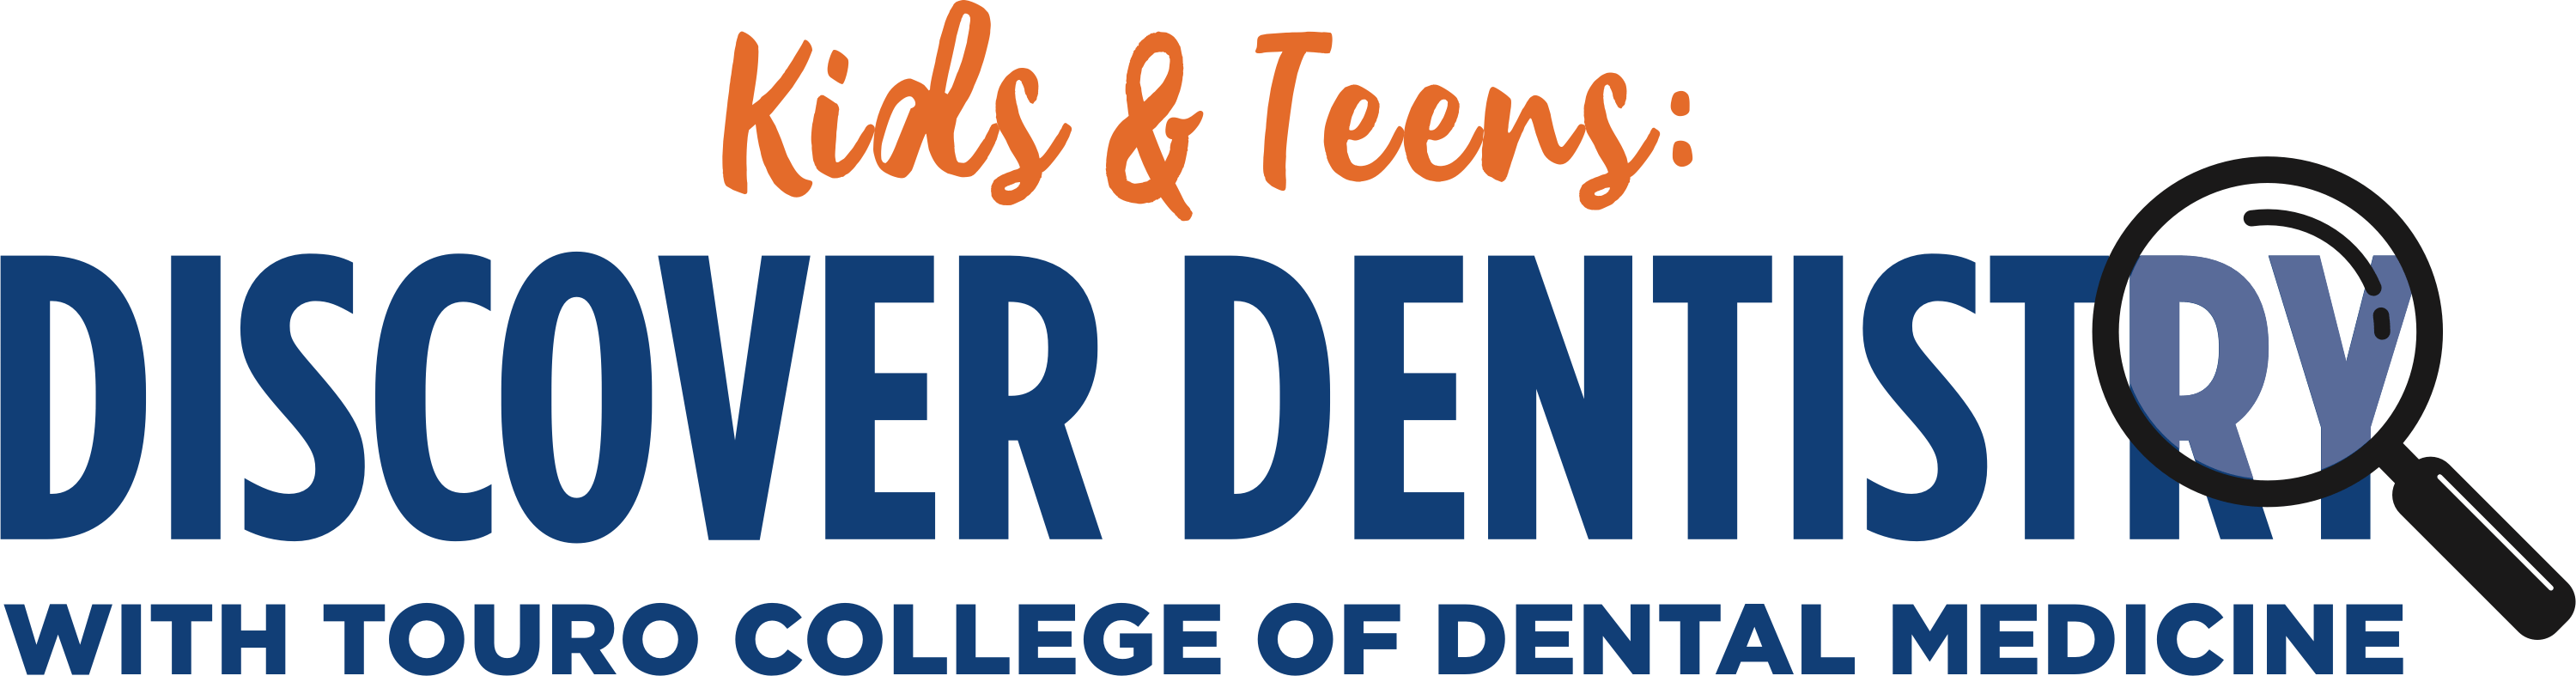 Kids & Teens: Discover Dentistry with Touro College of Dental Medicine